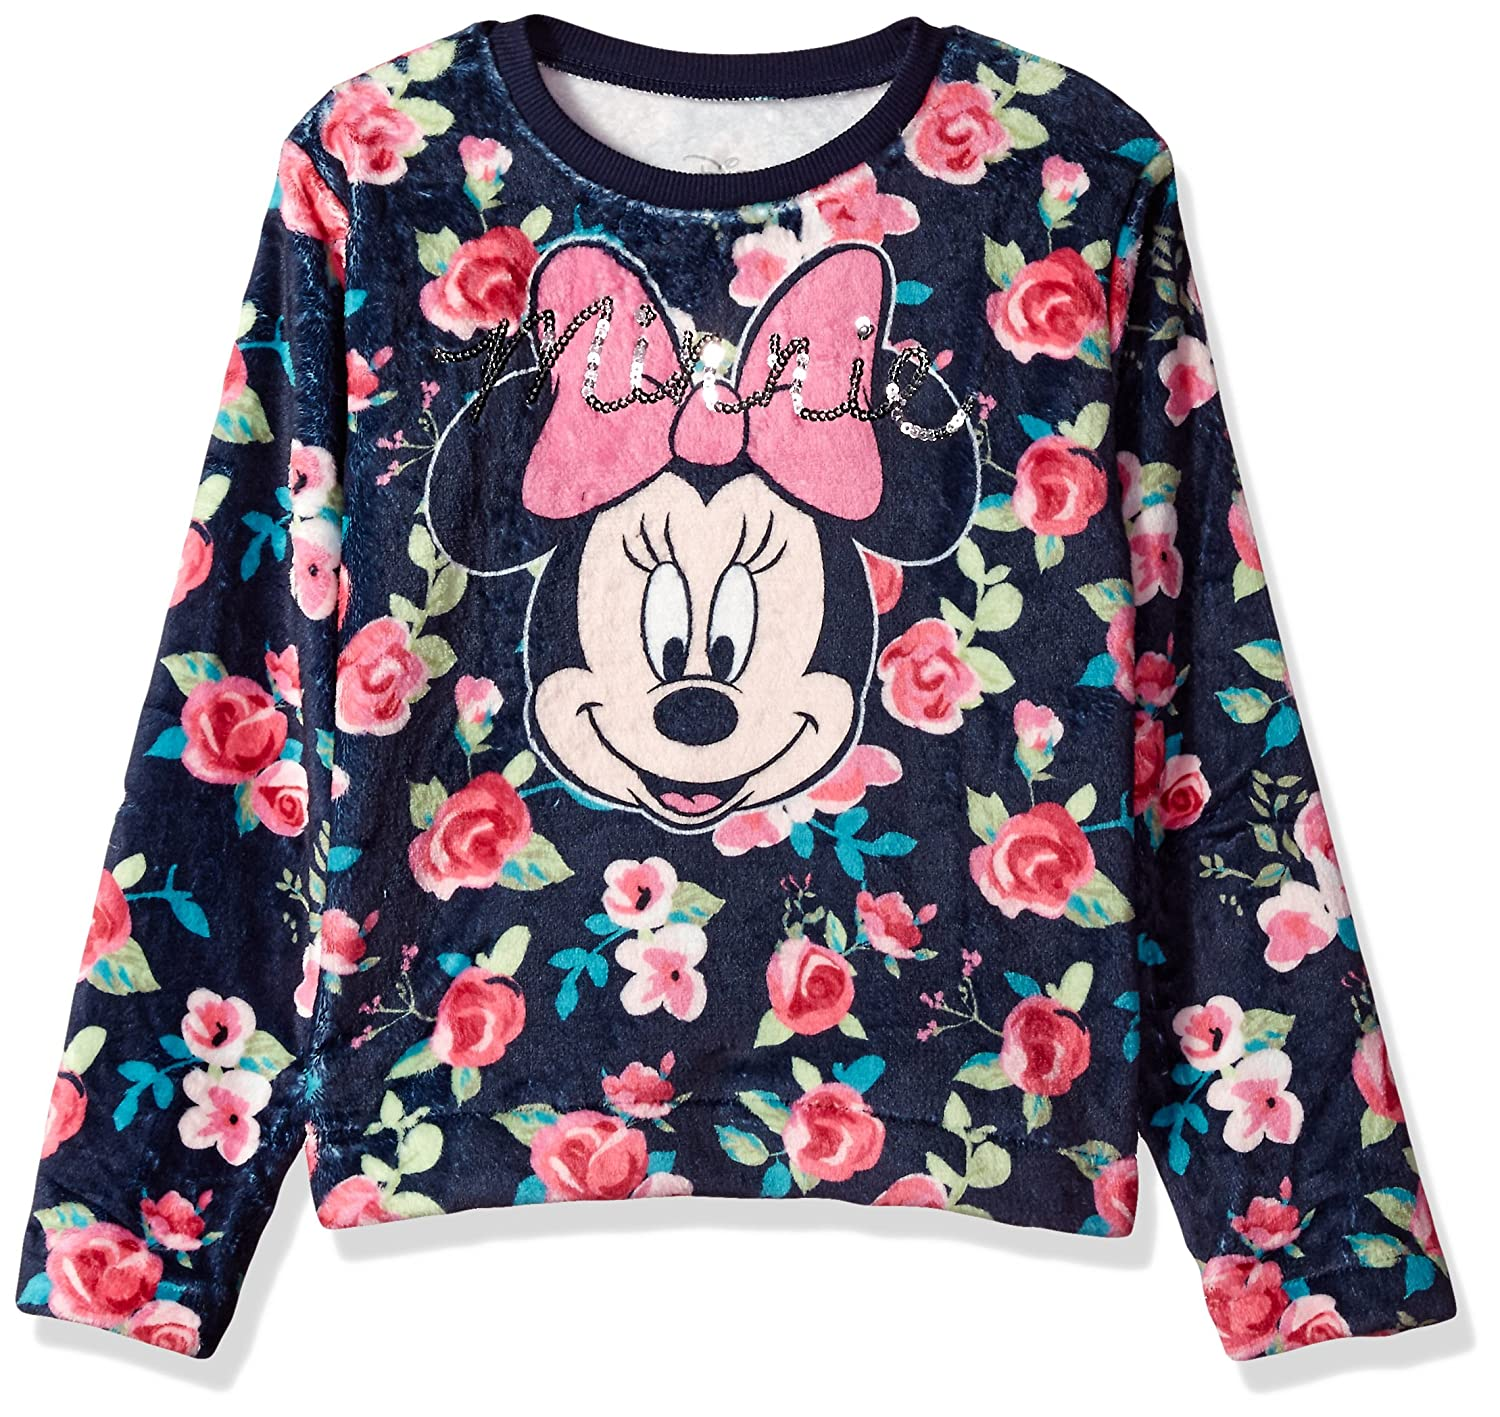 Disney Girls' Minnie Mouse Woobie Long Sleeve Pullover Sweater DSNI00TCLC